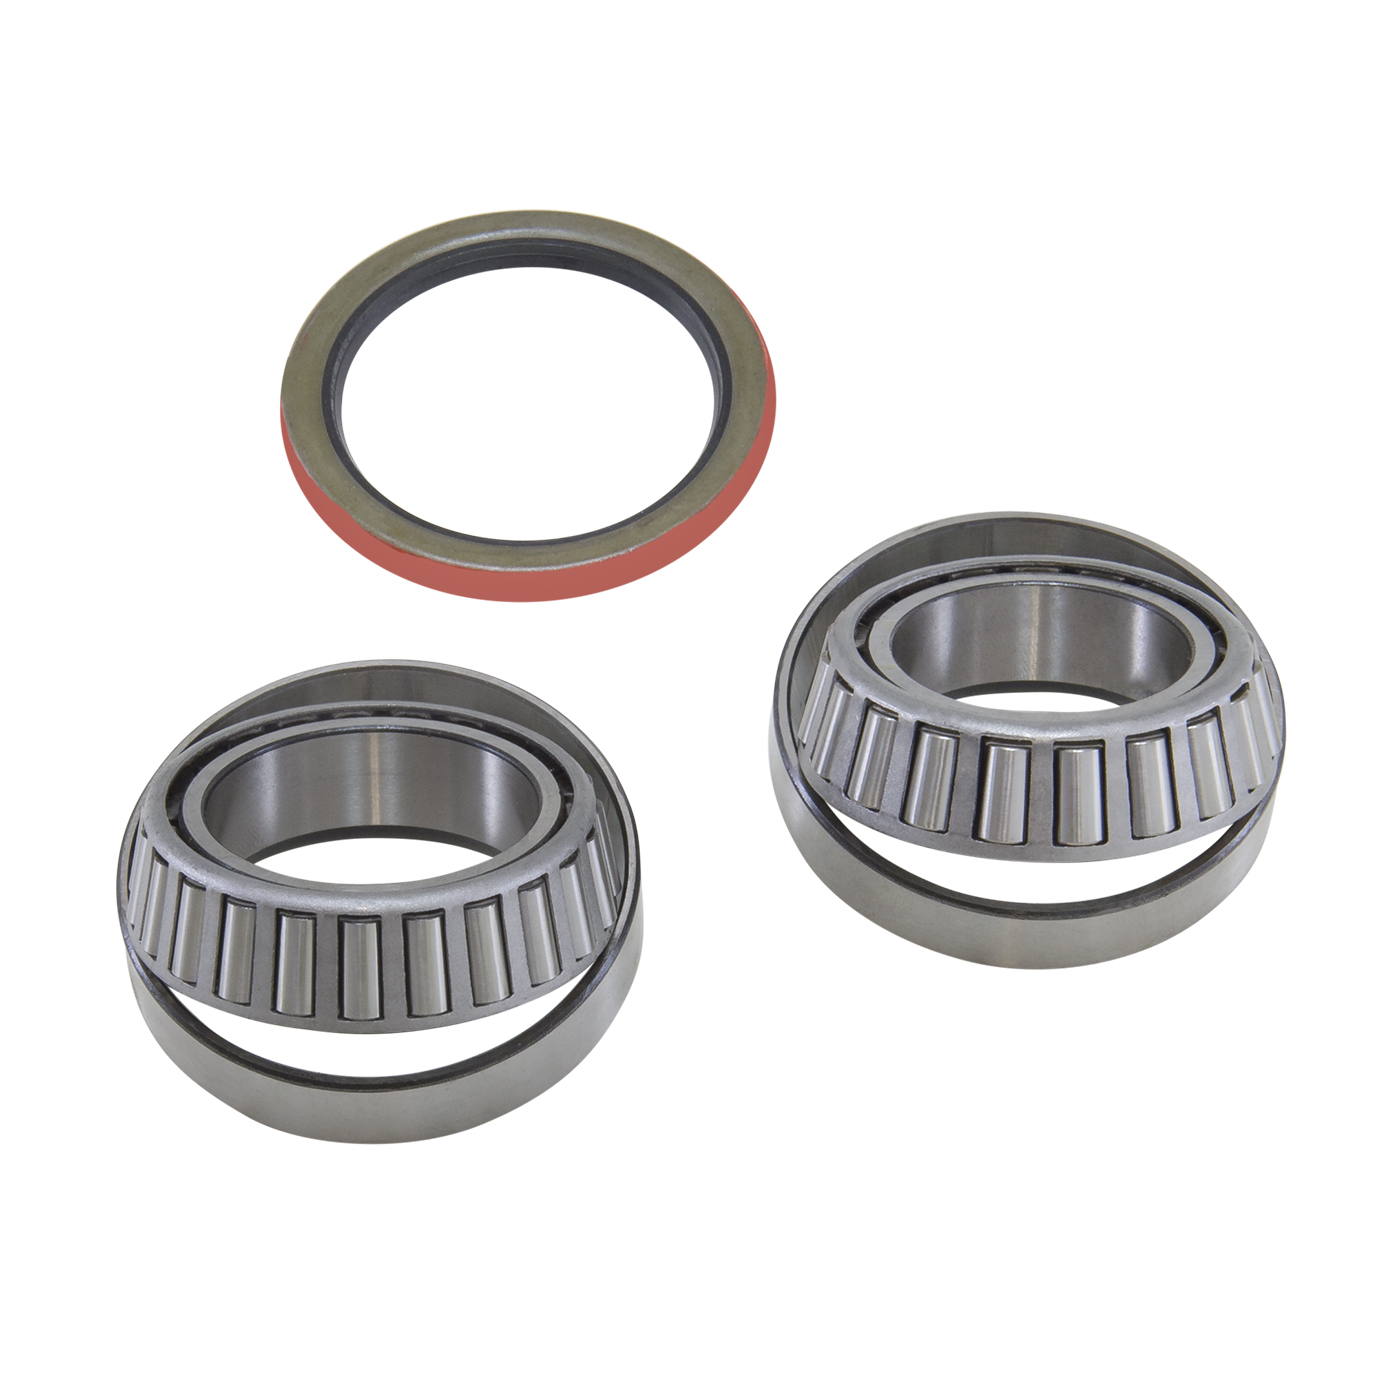 AK F-I01 - Yukon Axle Bearing and Seal Kit for Dana 44 Front